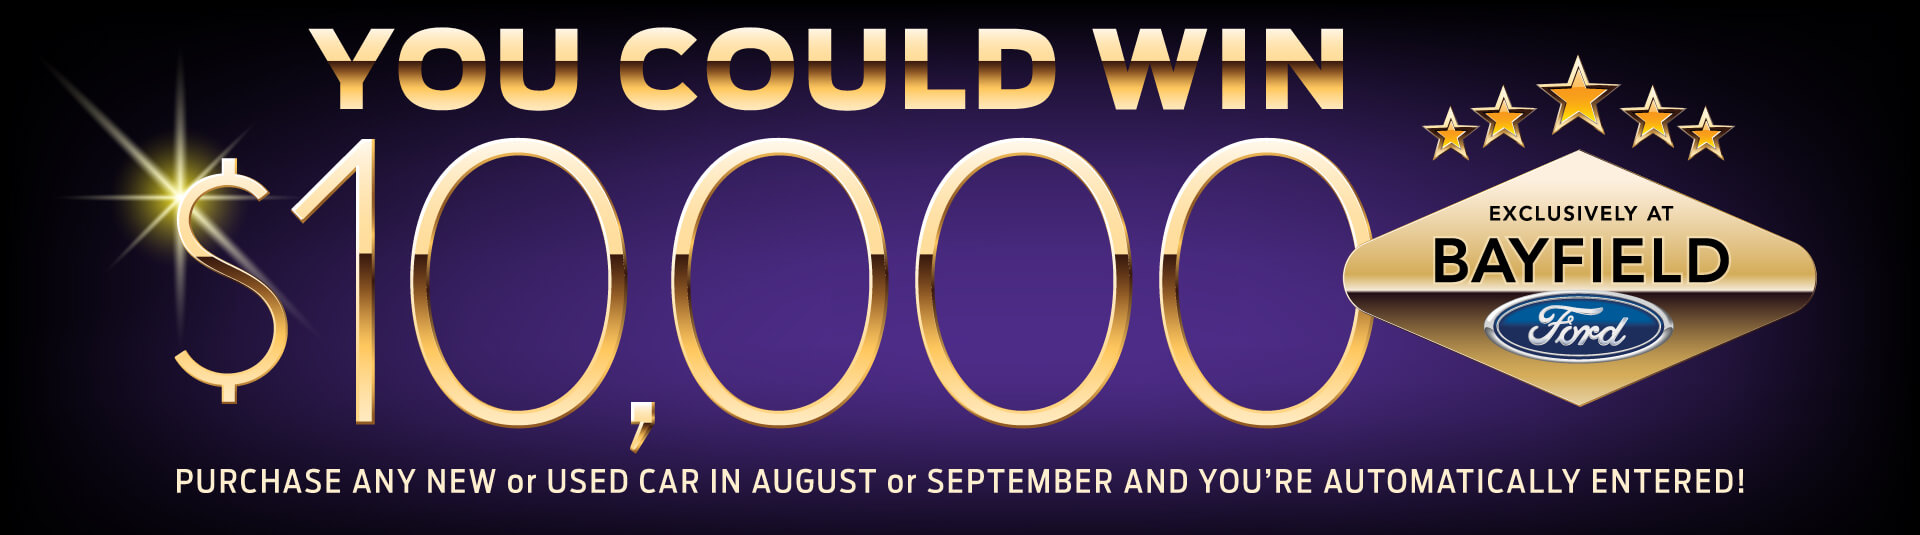 Bayfield Ford $10,000 Giveaway